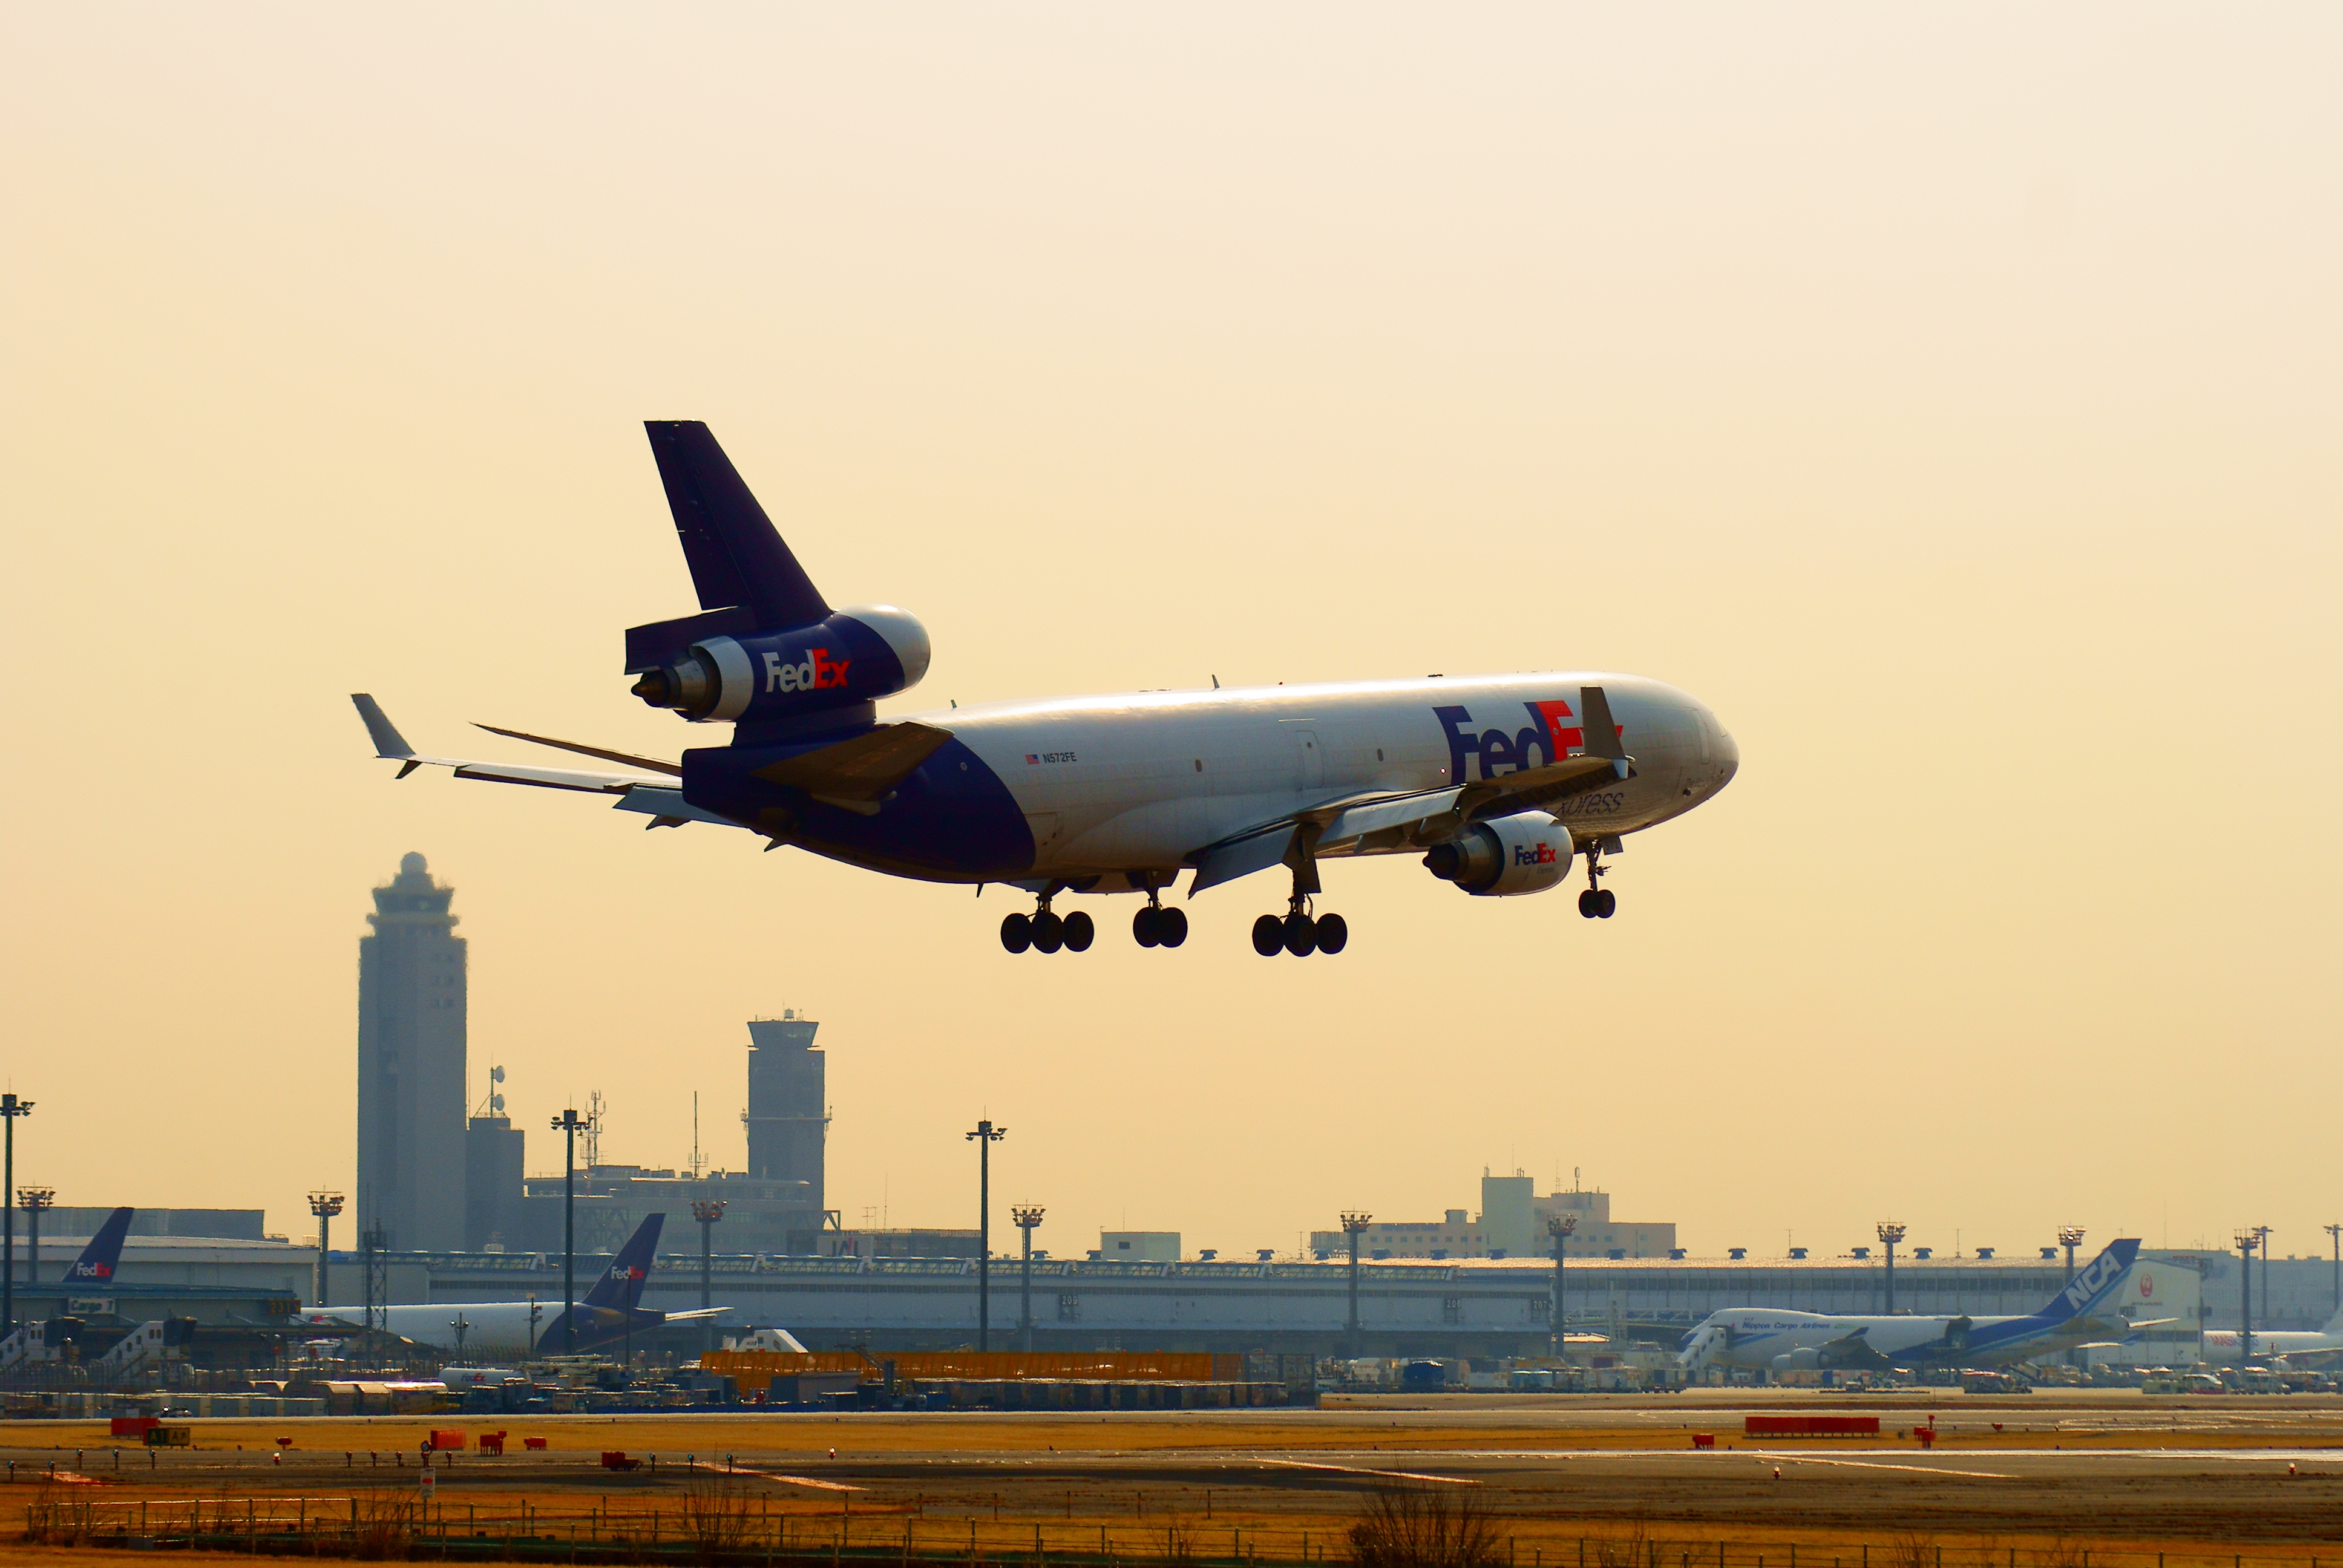 The World's 10 Best Cargo Airports - Airport Spotting Blog